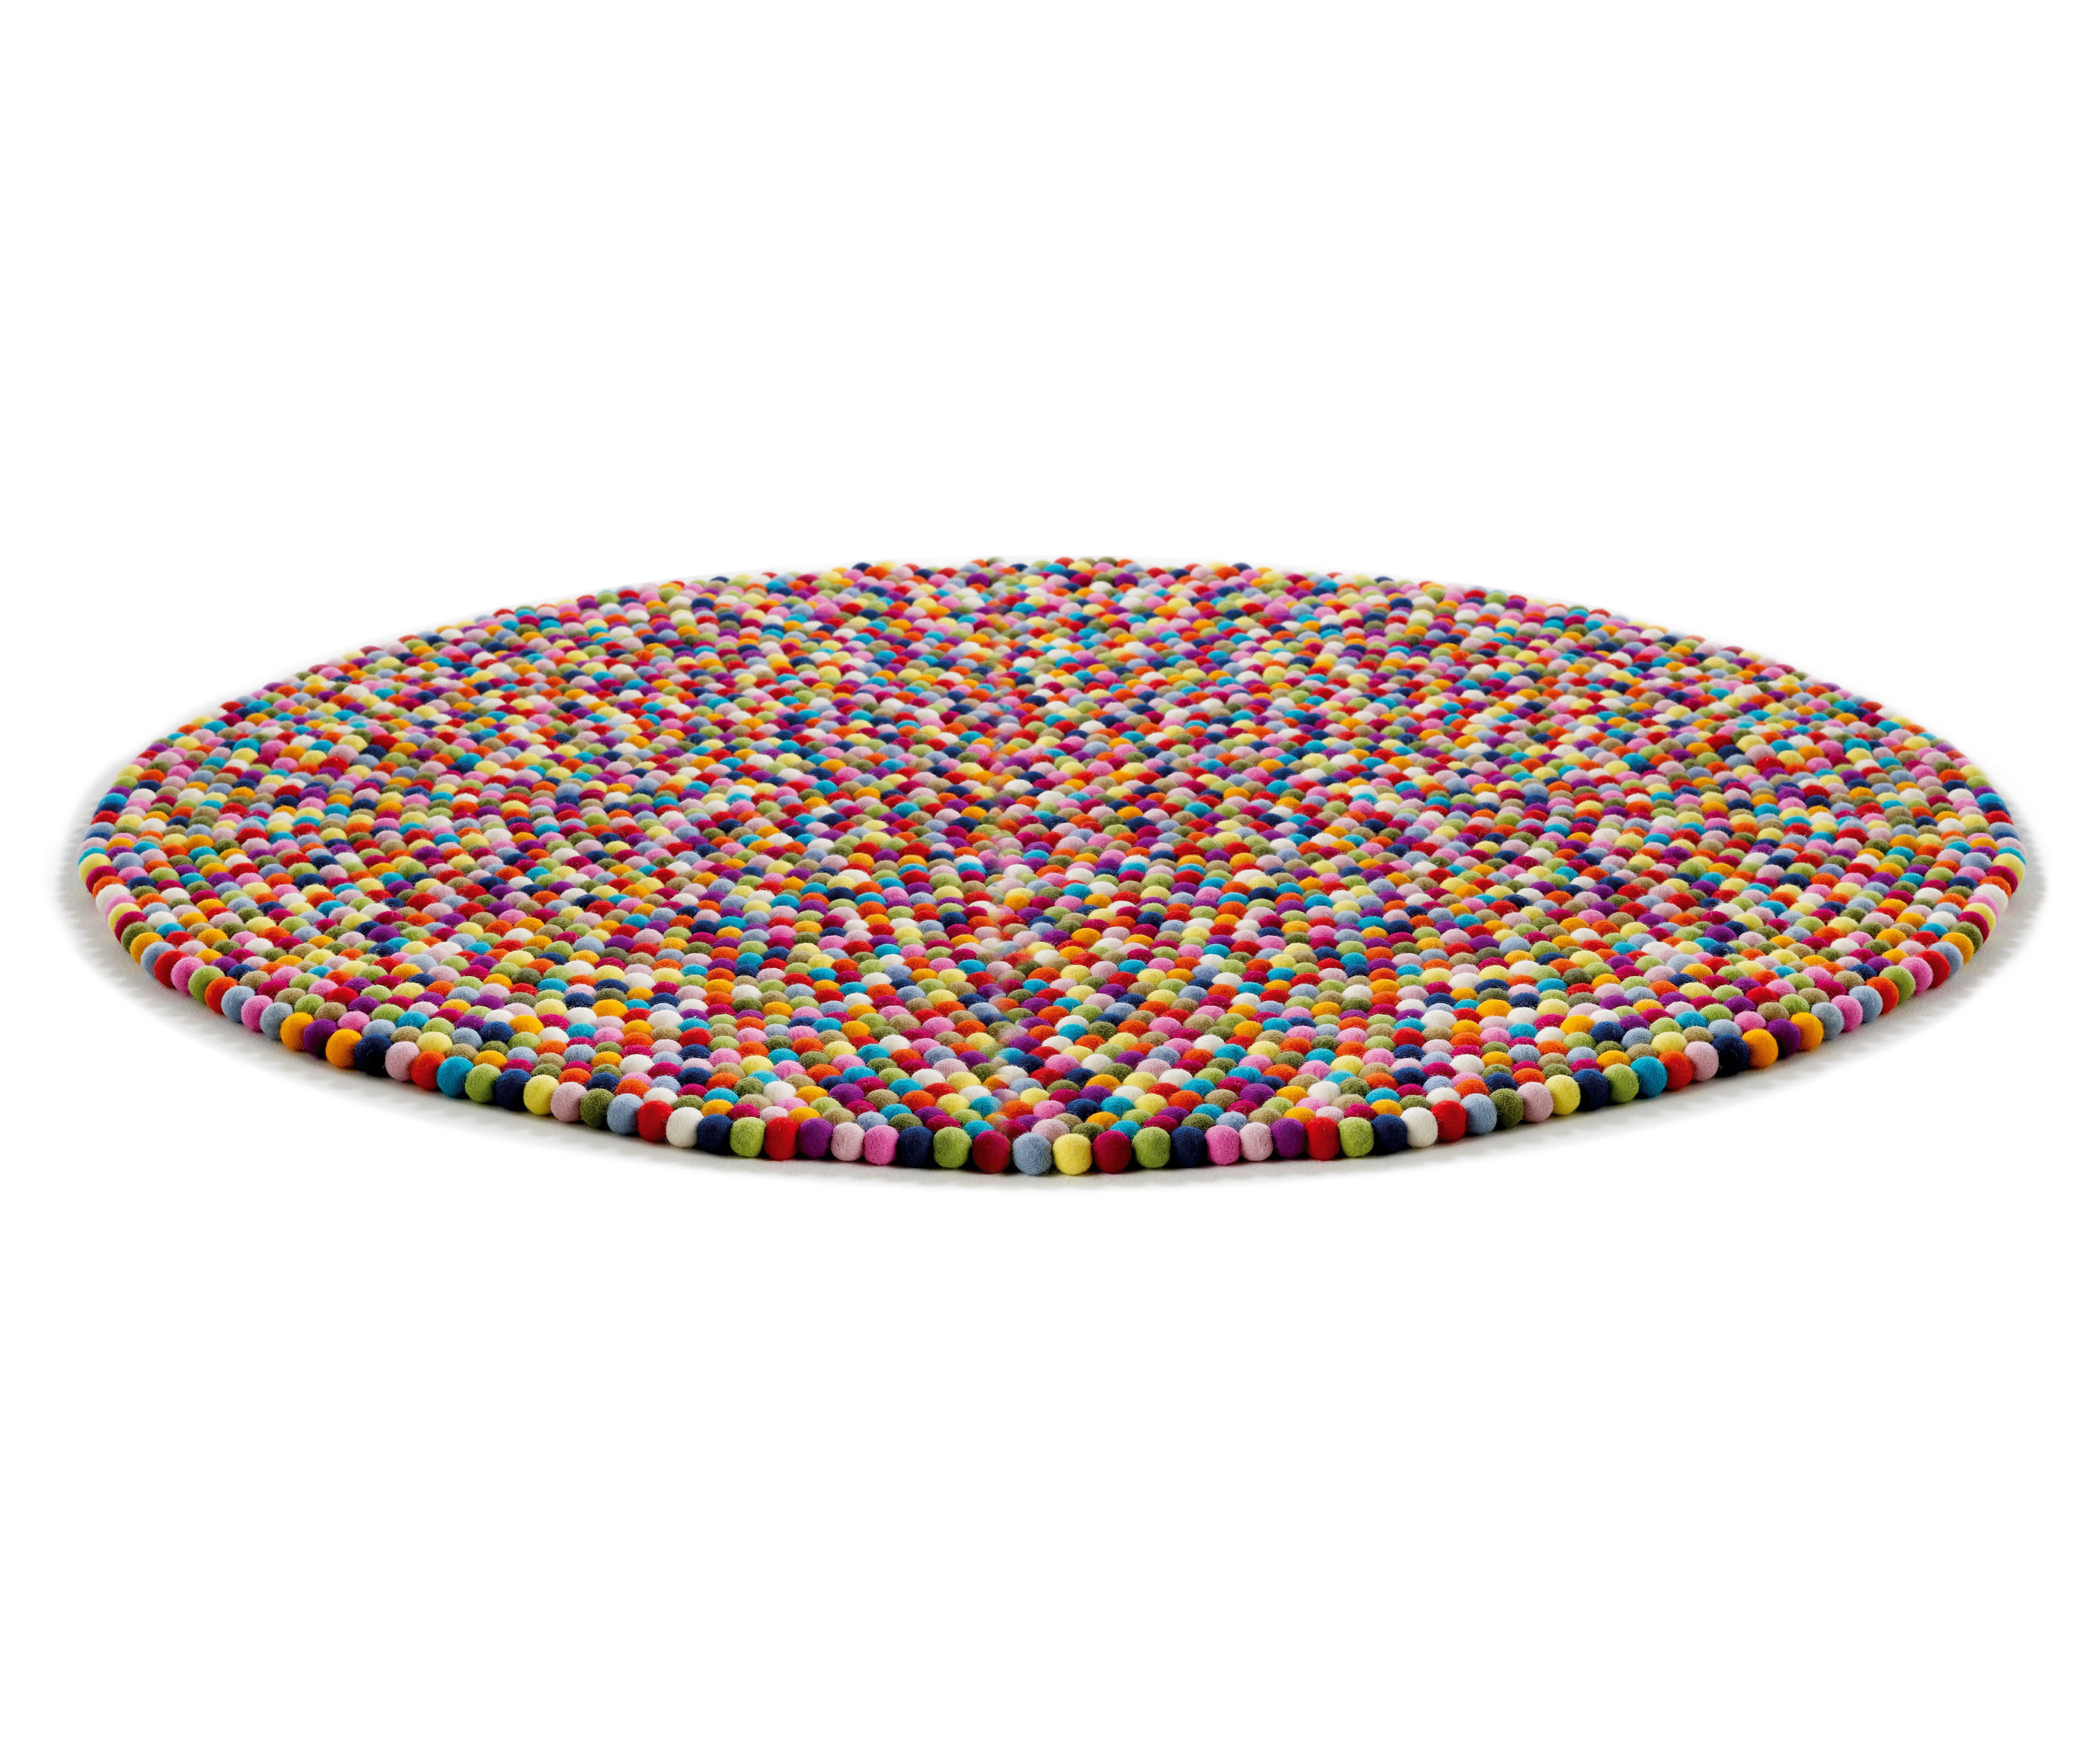 Pinocchio rug 140 cm multicolour by hay for Decor 140 rugs